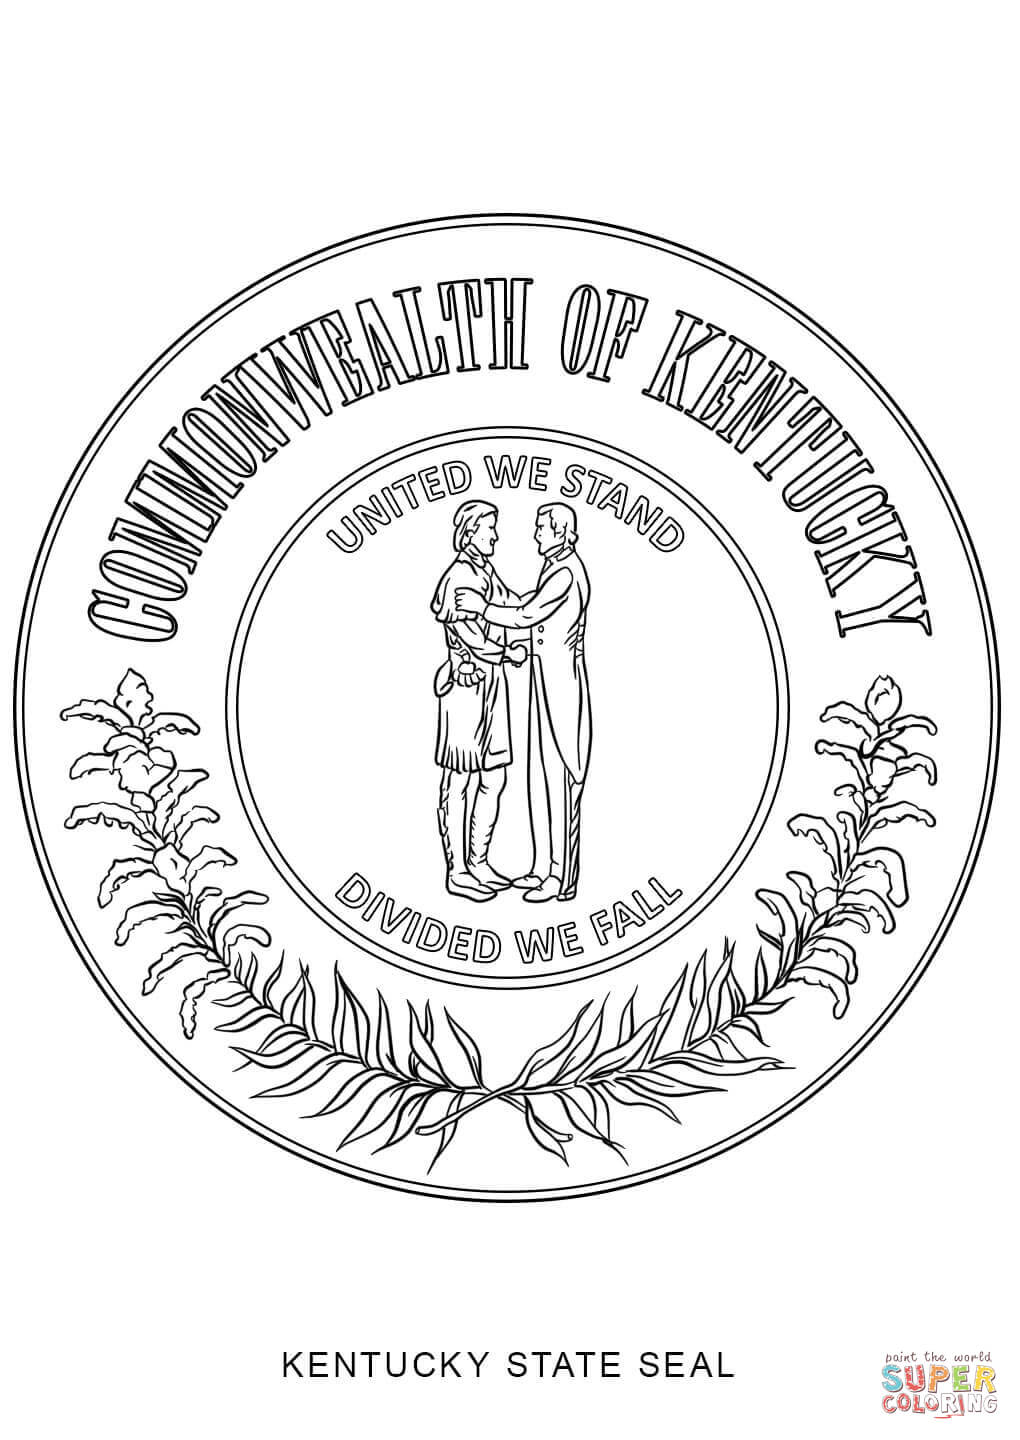 texas state seal coloring page awesome north dakota state seal coloring page top free page texas coloring seal state